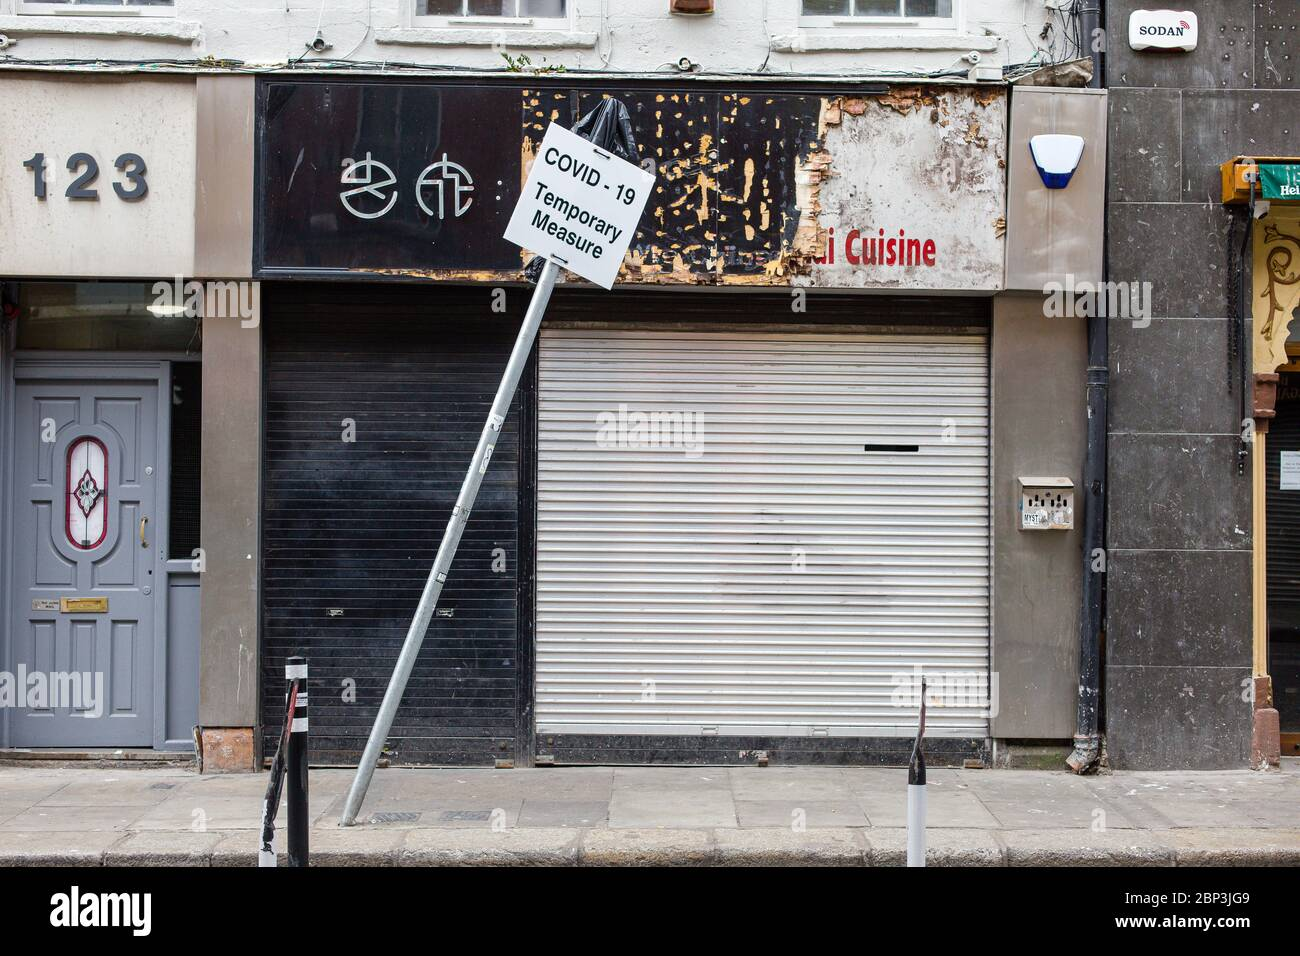 Closed down shop on Capel Steet in Dublin and leaning sign - Covid-19 Temporary Measure. Coronavirus outbreak lockdown economic impact, Ireland. Stock Photo